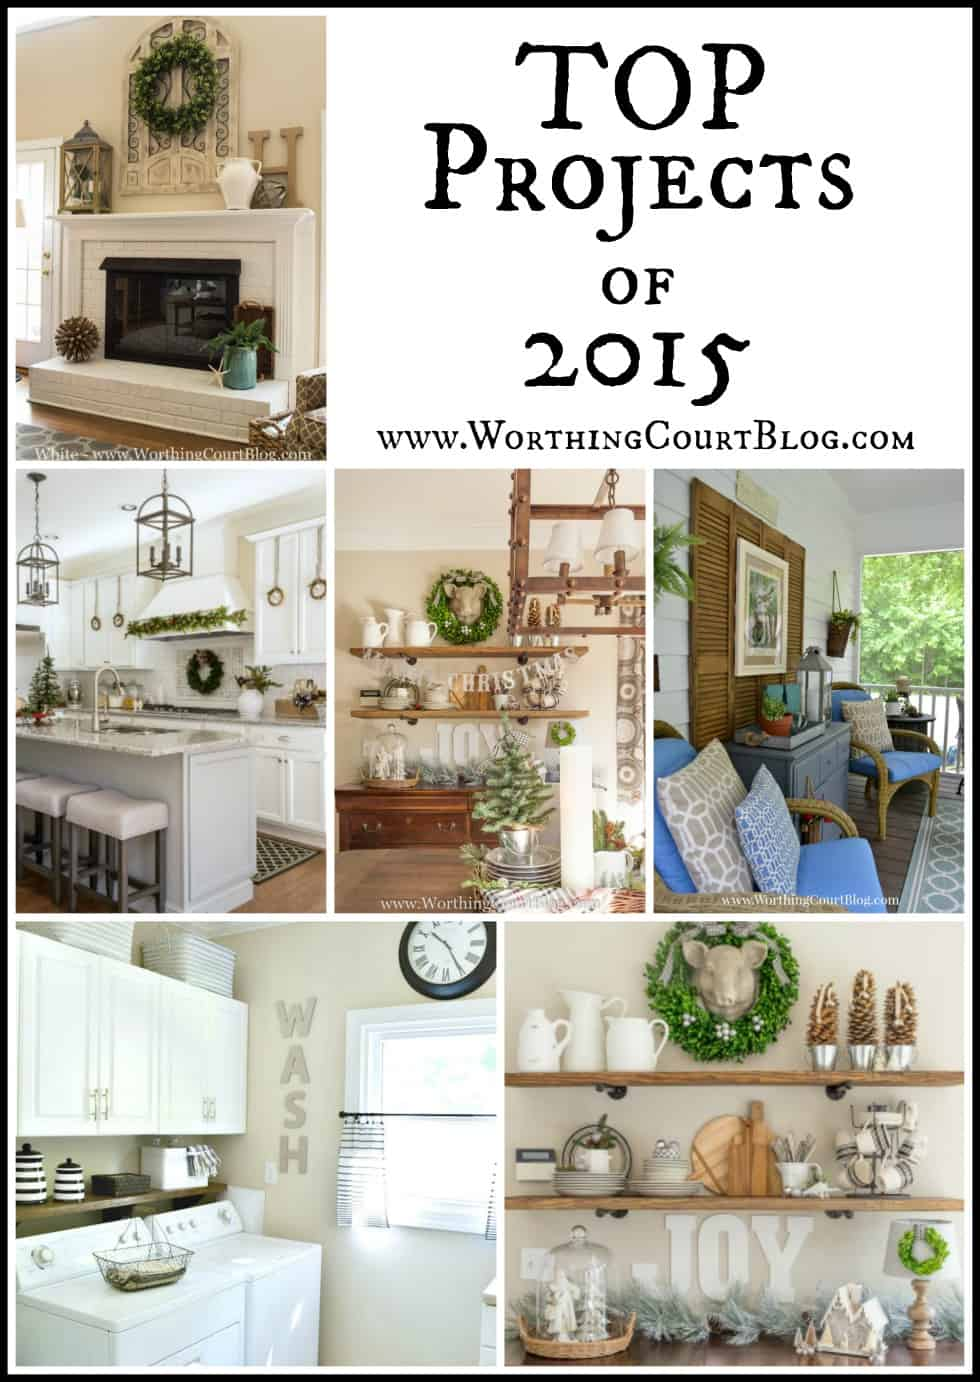 Remodeled kitchen, laundry room, breakfast room, screen porch and a fireplace makeover